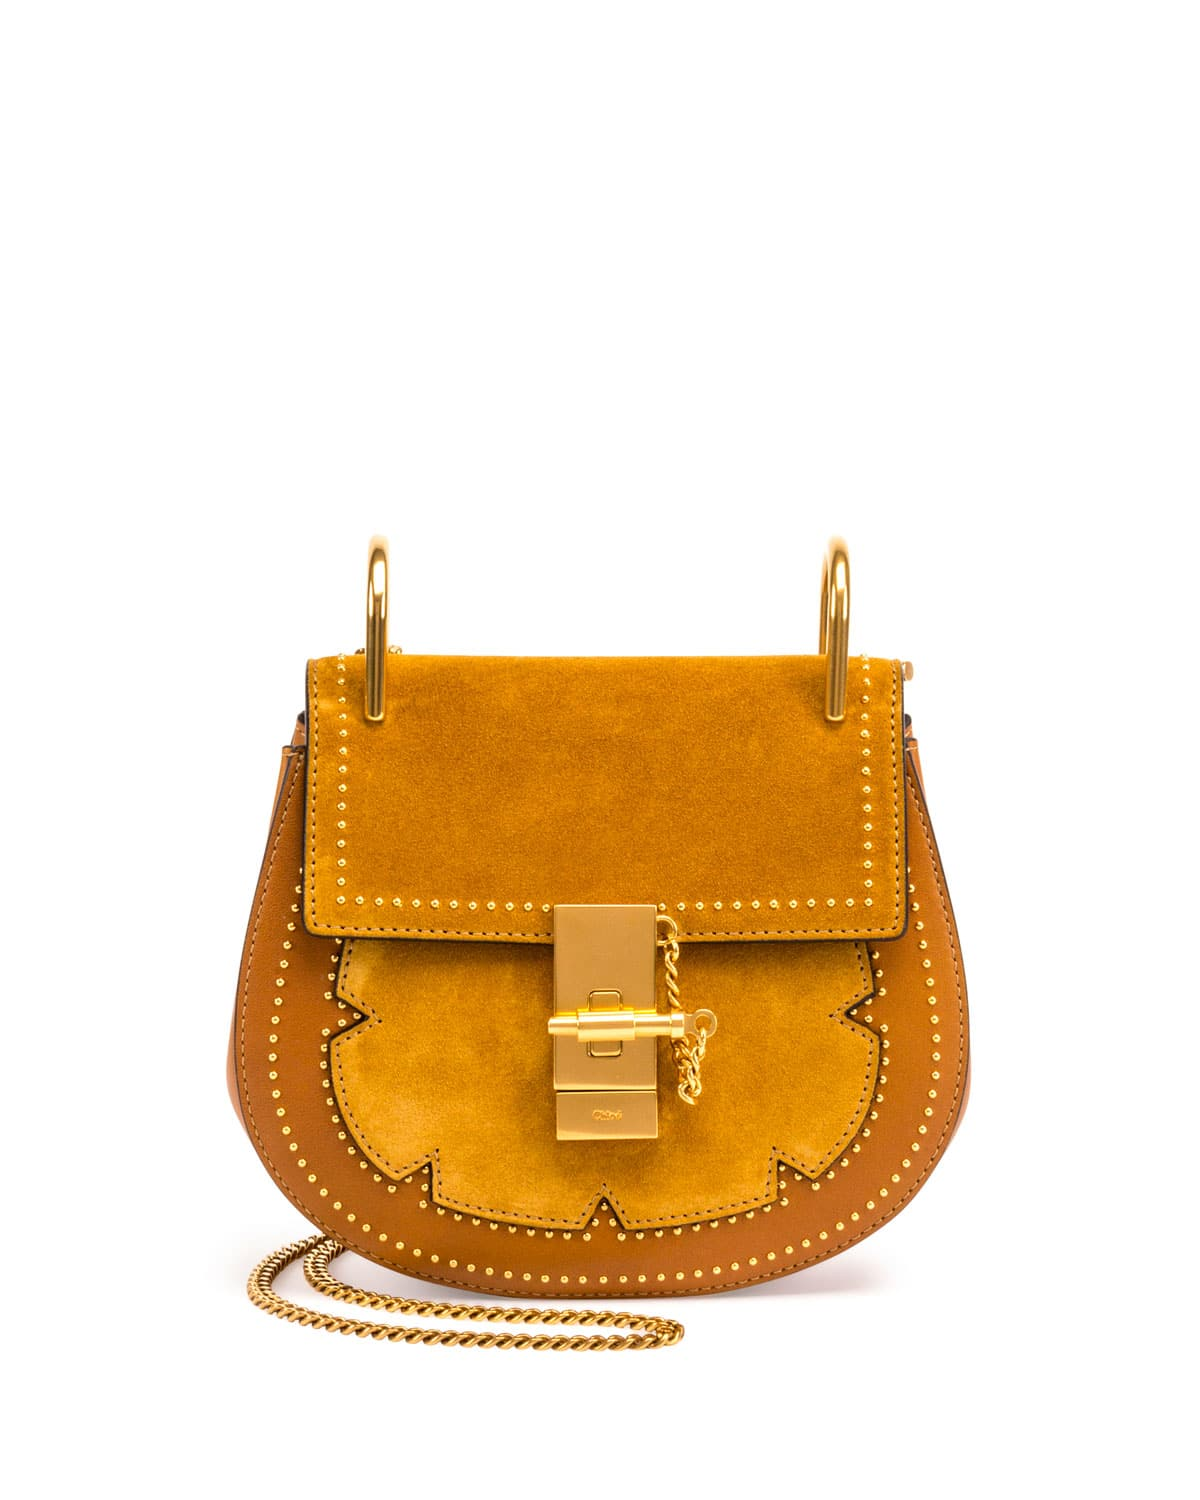 fe5979360 Chloe Bag Price List Reference Guide – Spotted Fashion